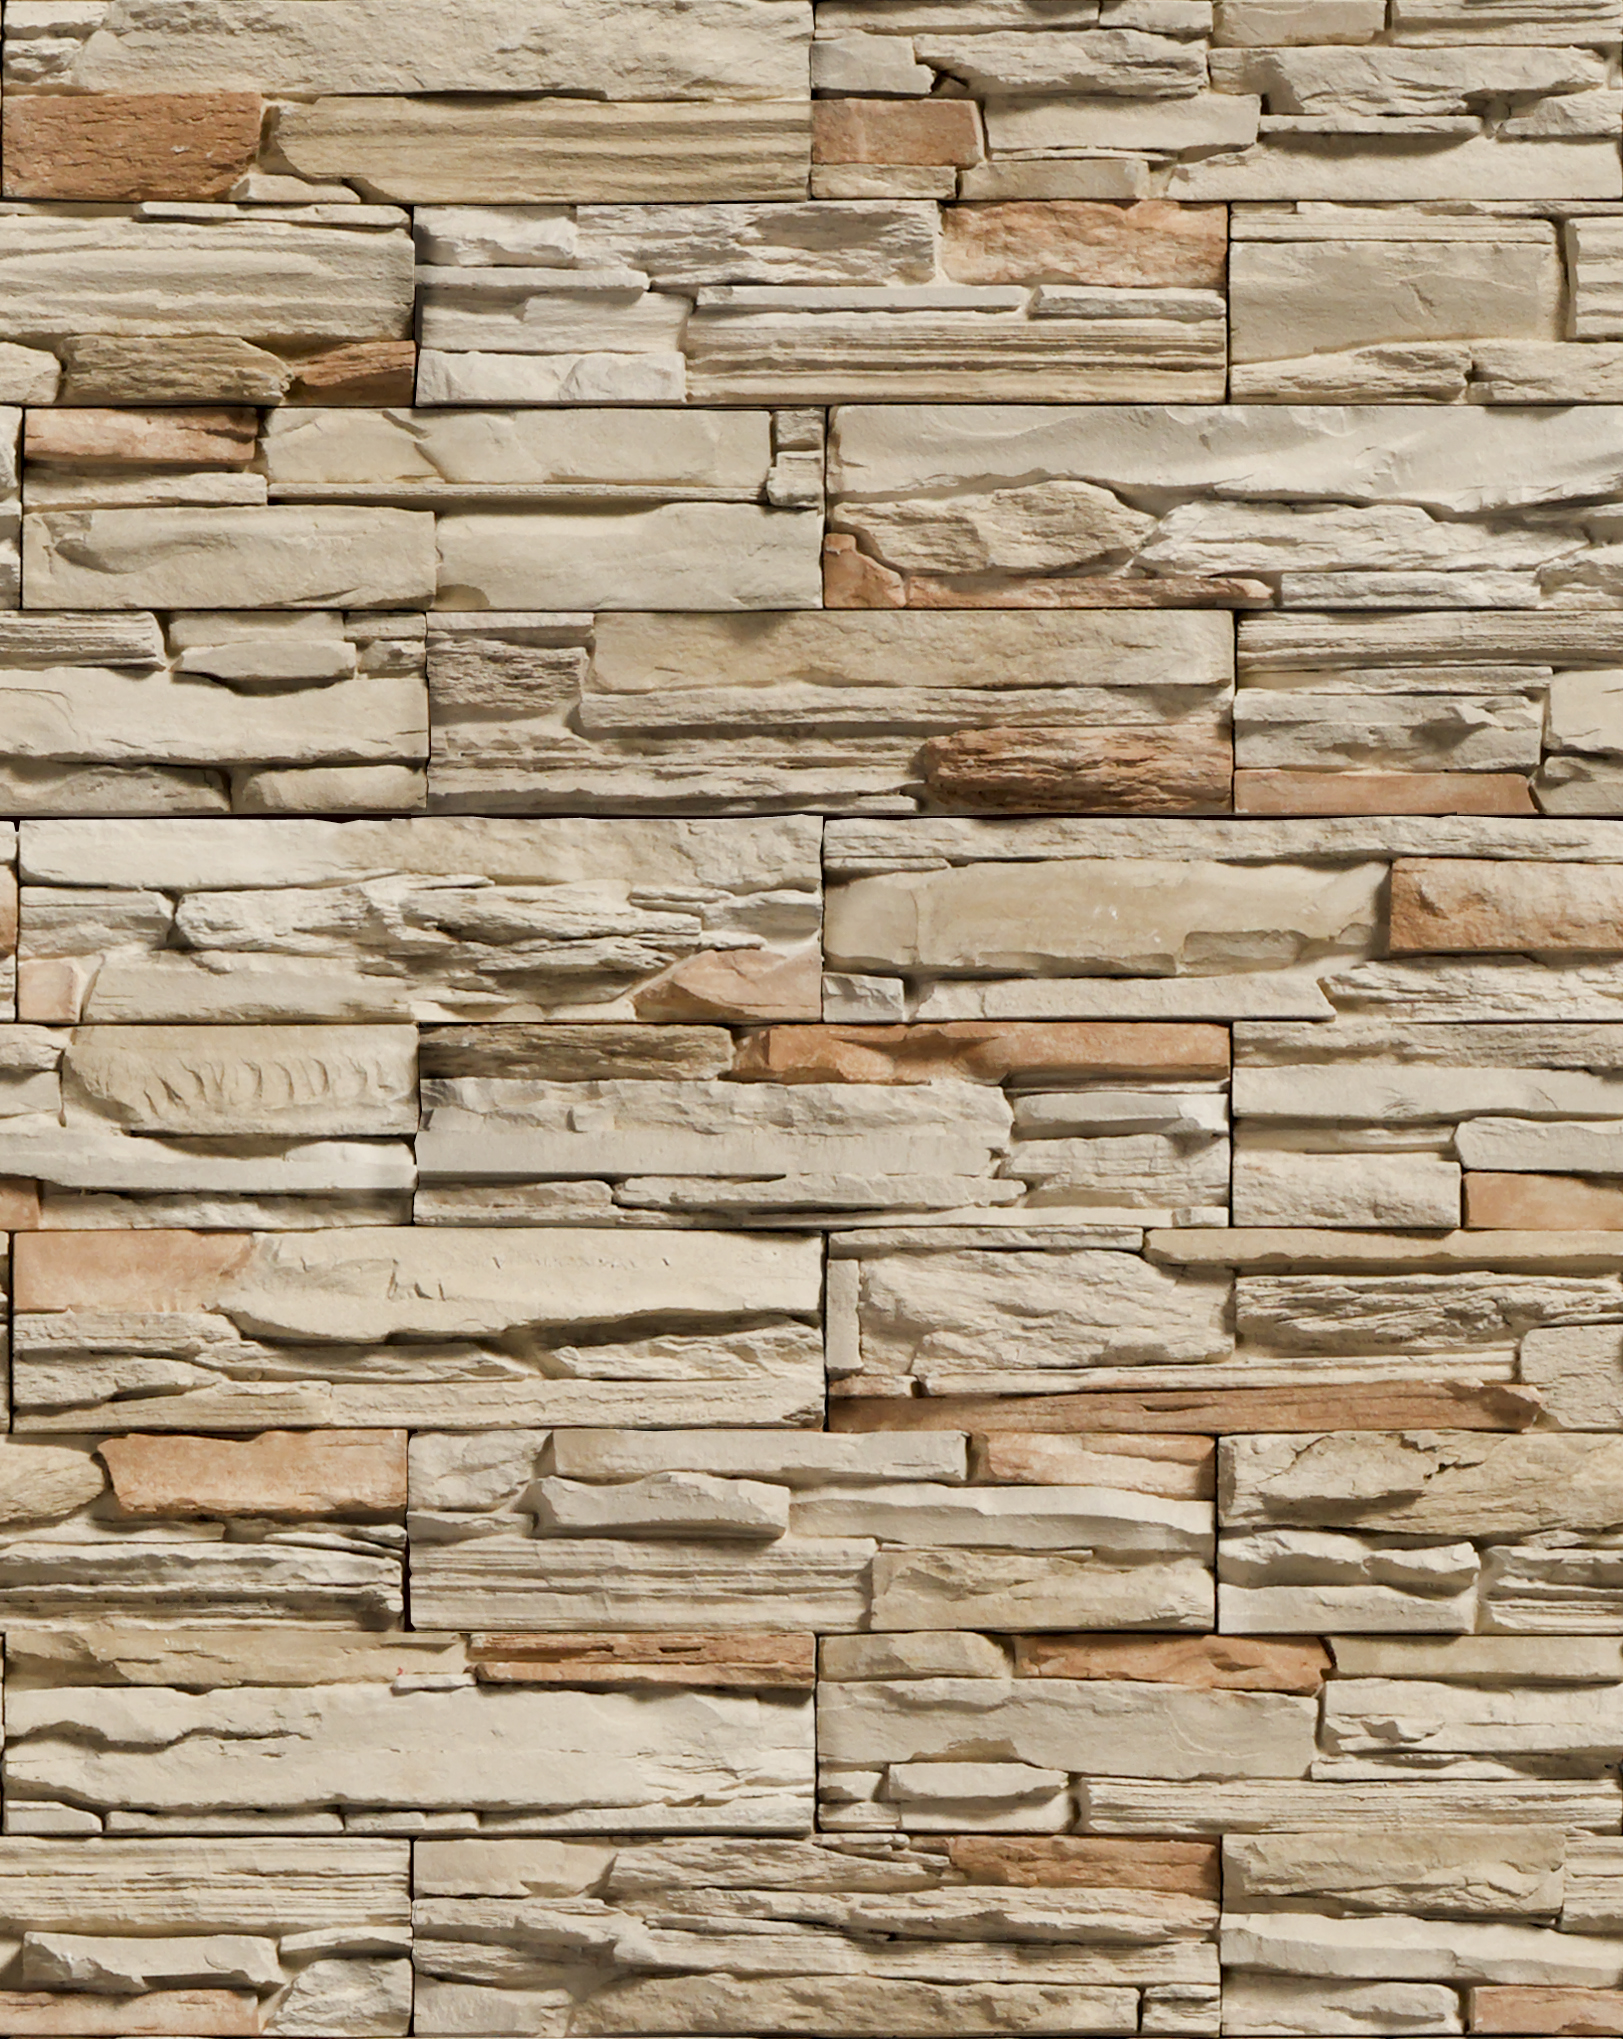 Wild Stone Wall Texture Stone Stone Wall Download